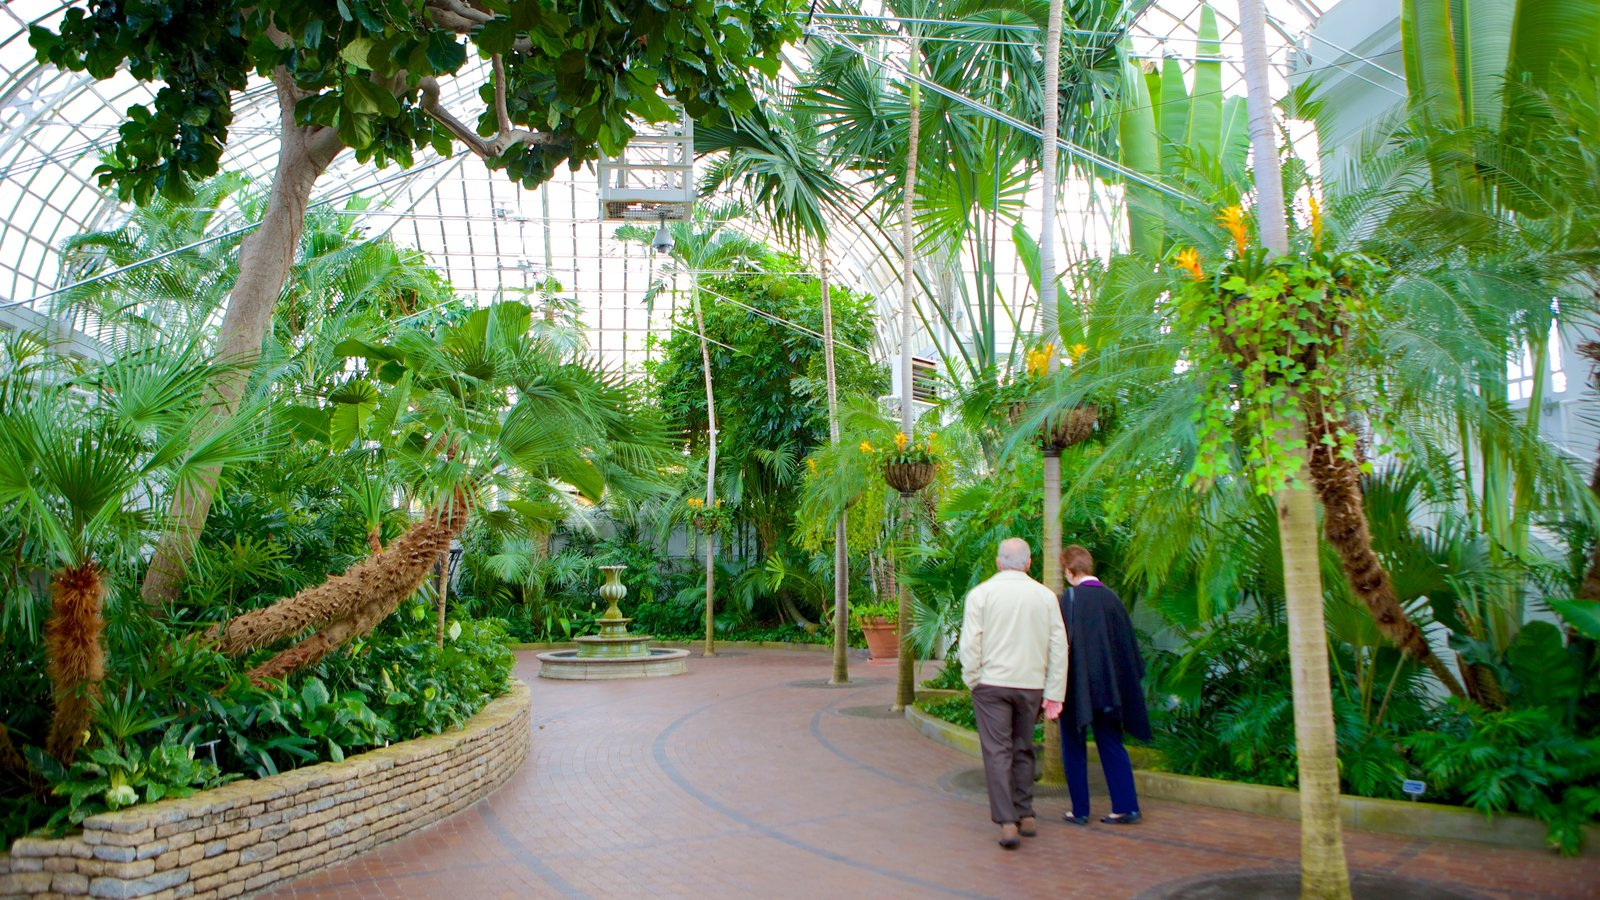 Merveilleux Franklin Park Conservatory And Botanical Gardens Which Includes A Garden  And Interior Views As Well As